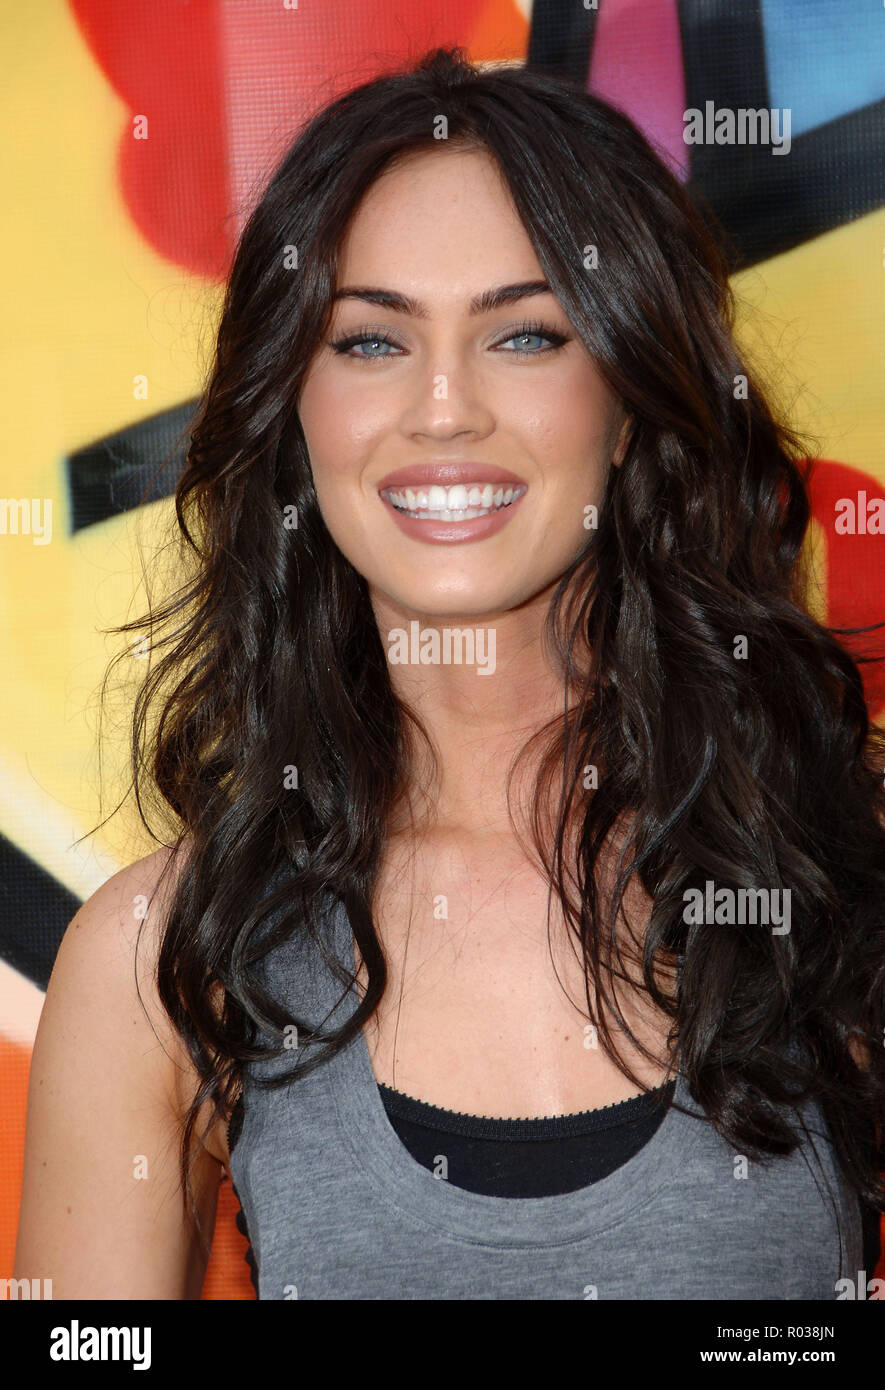 Megan Fox arriving at the TEEN CHOICE Awards 2007 at the Universal  Amphitheatre in Los Angeles. headshot eye contact smile 36 FoxMegan 36 Red  Carpet Event, ...